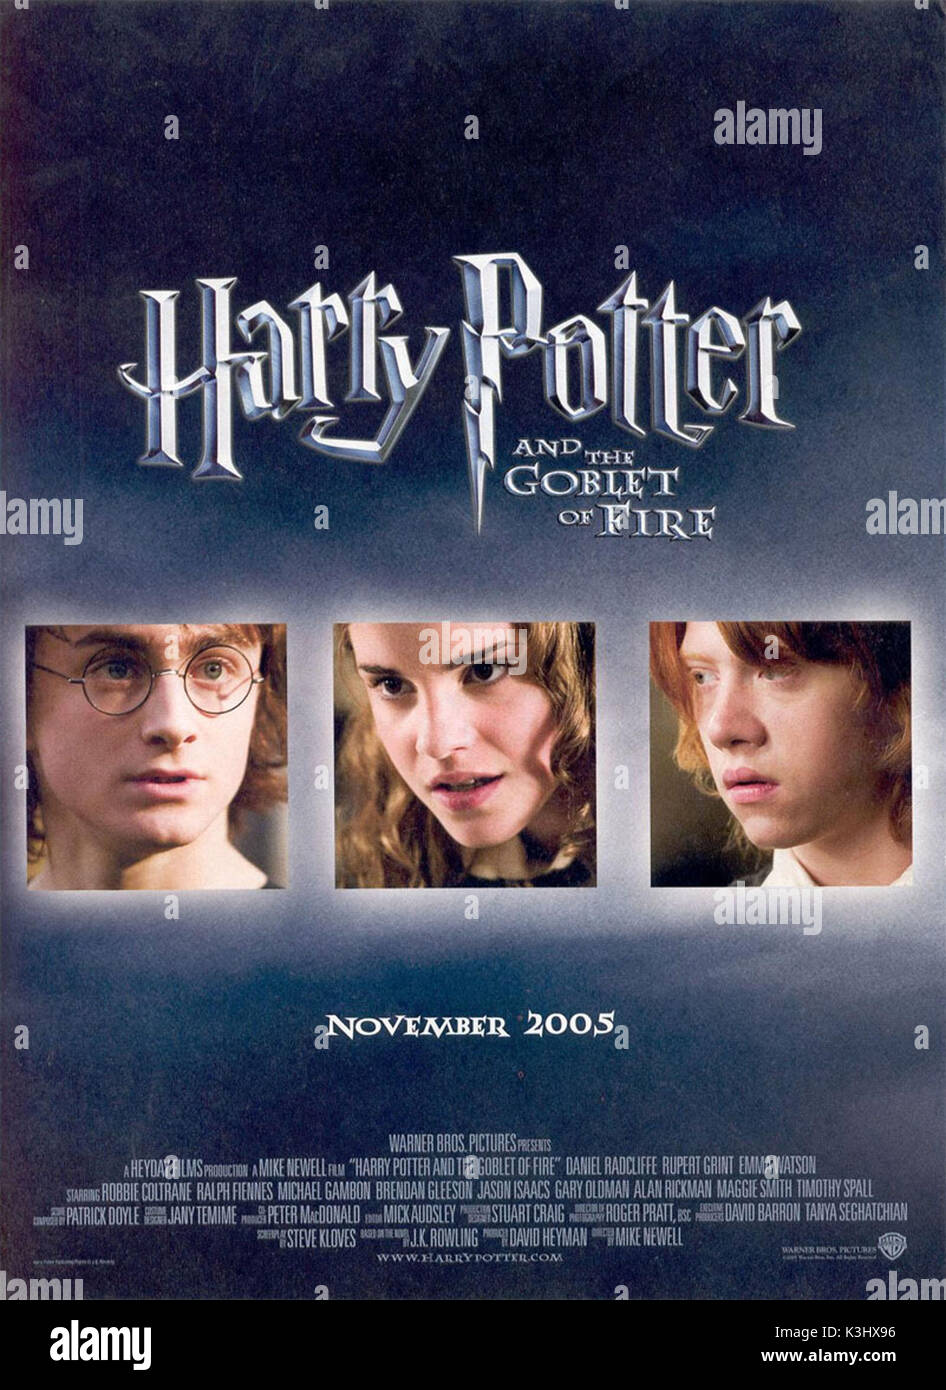 HARRY POTTER AND THE GOBLET OF FIRE DANIEL RADCLIFFE as Harry Potter, EMMA WATSON as Hermione Granger, RUPERT GRINT as Ron Weasley     Date: 2005 - Stock Image